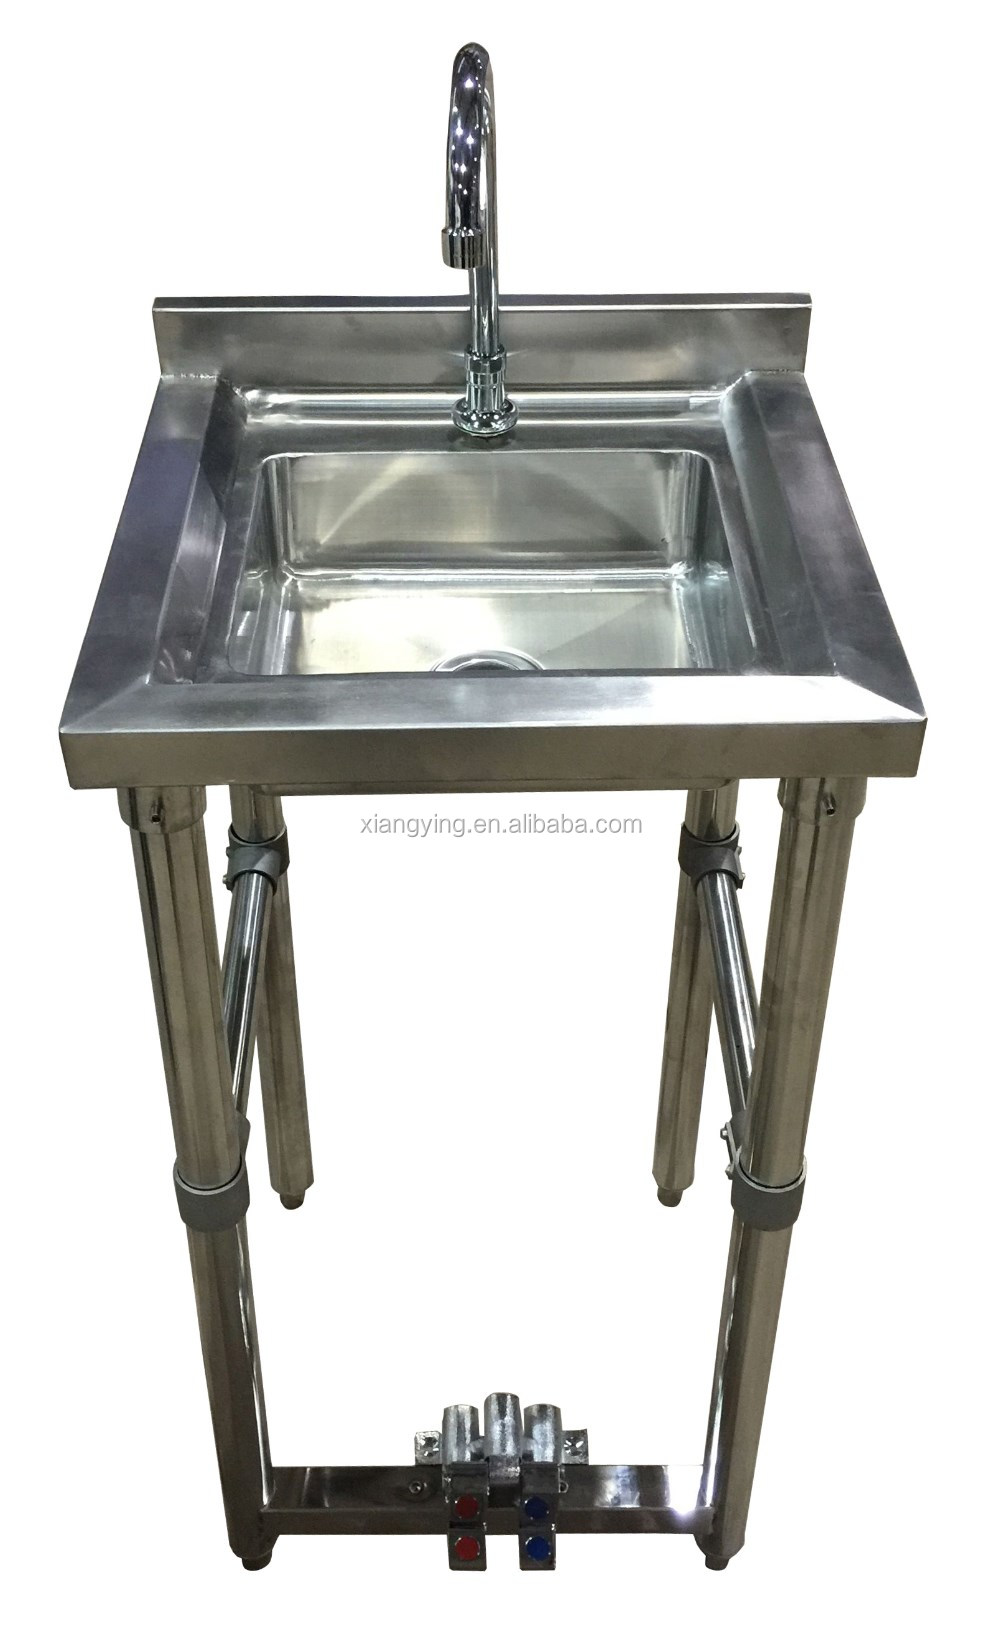 - Nsf Approval Stainless Steel Knee Pedal Operated Hand Wash Sink